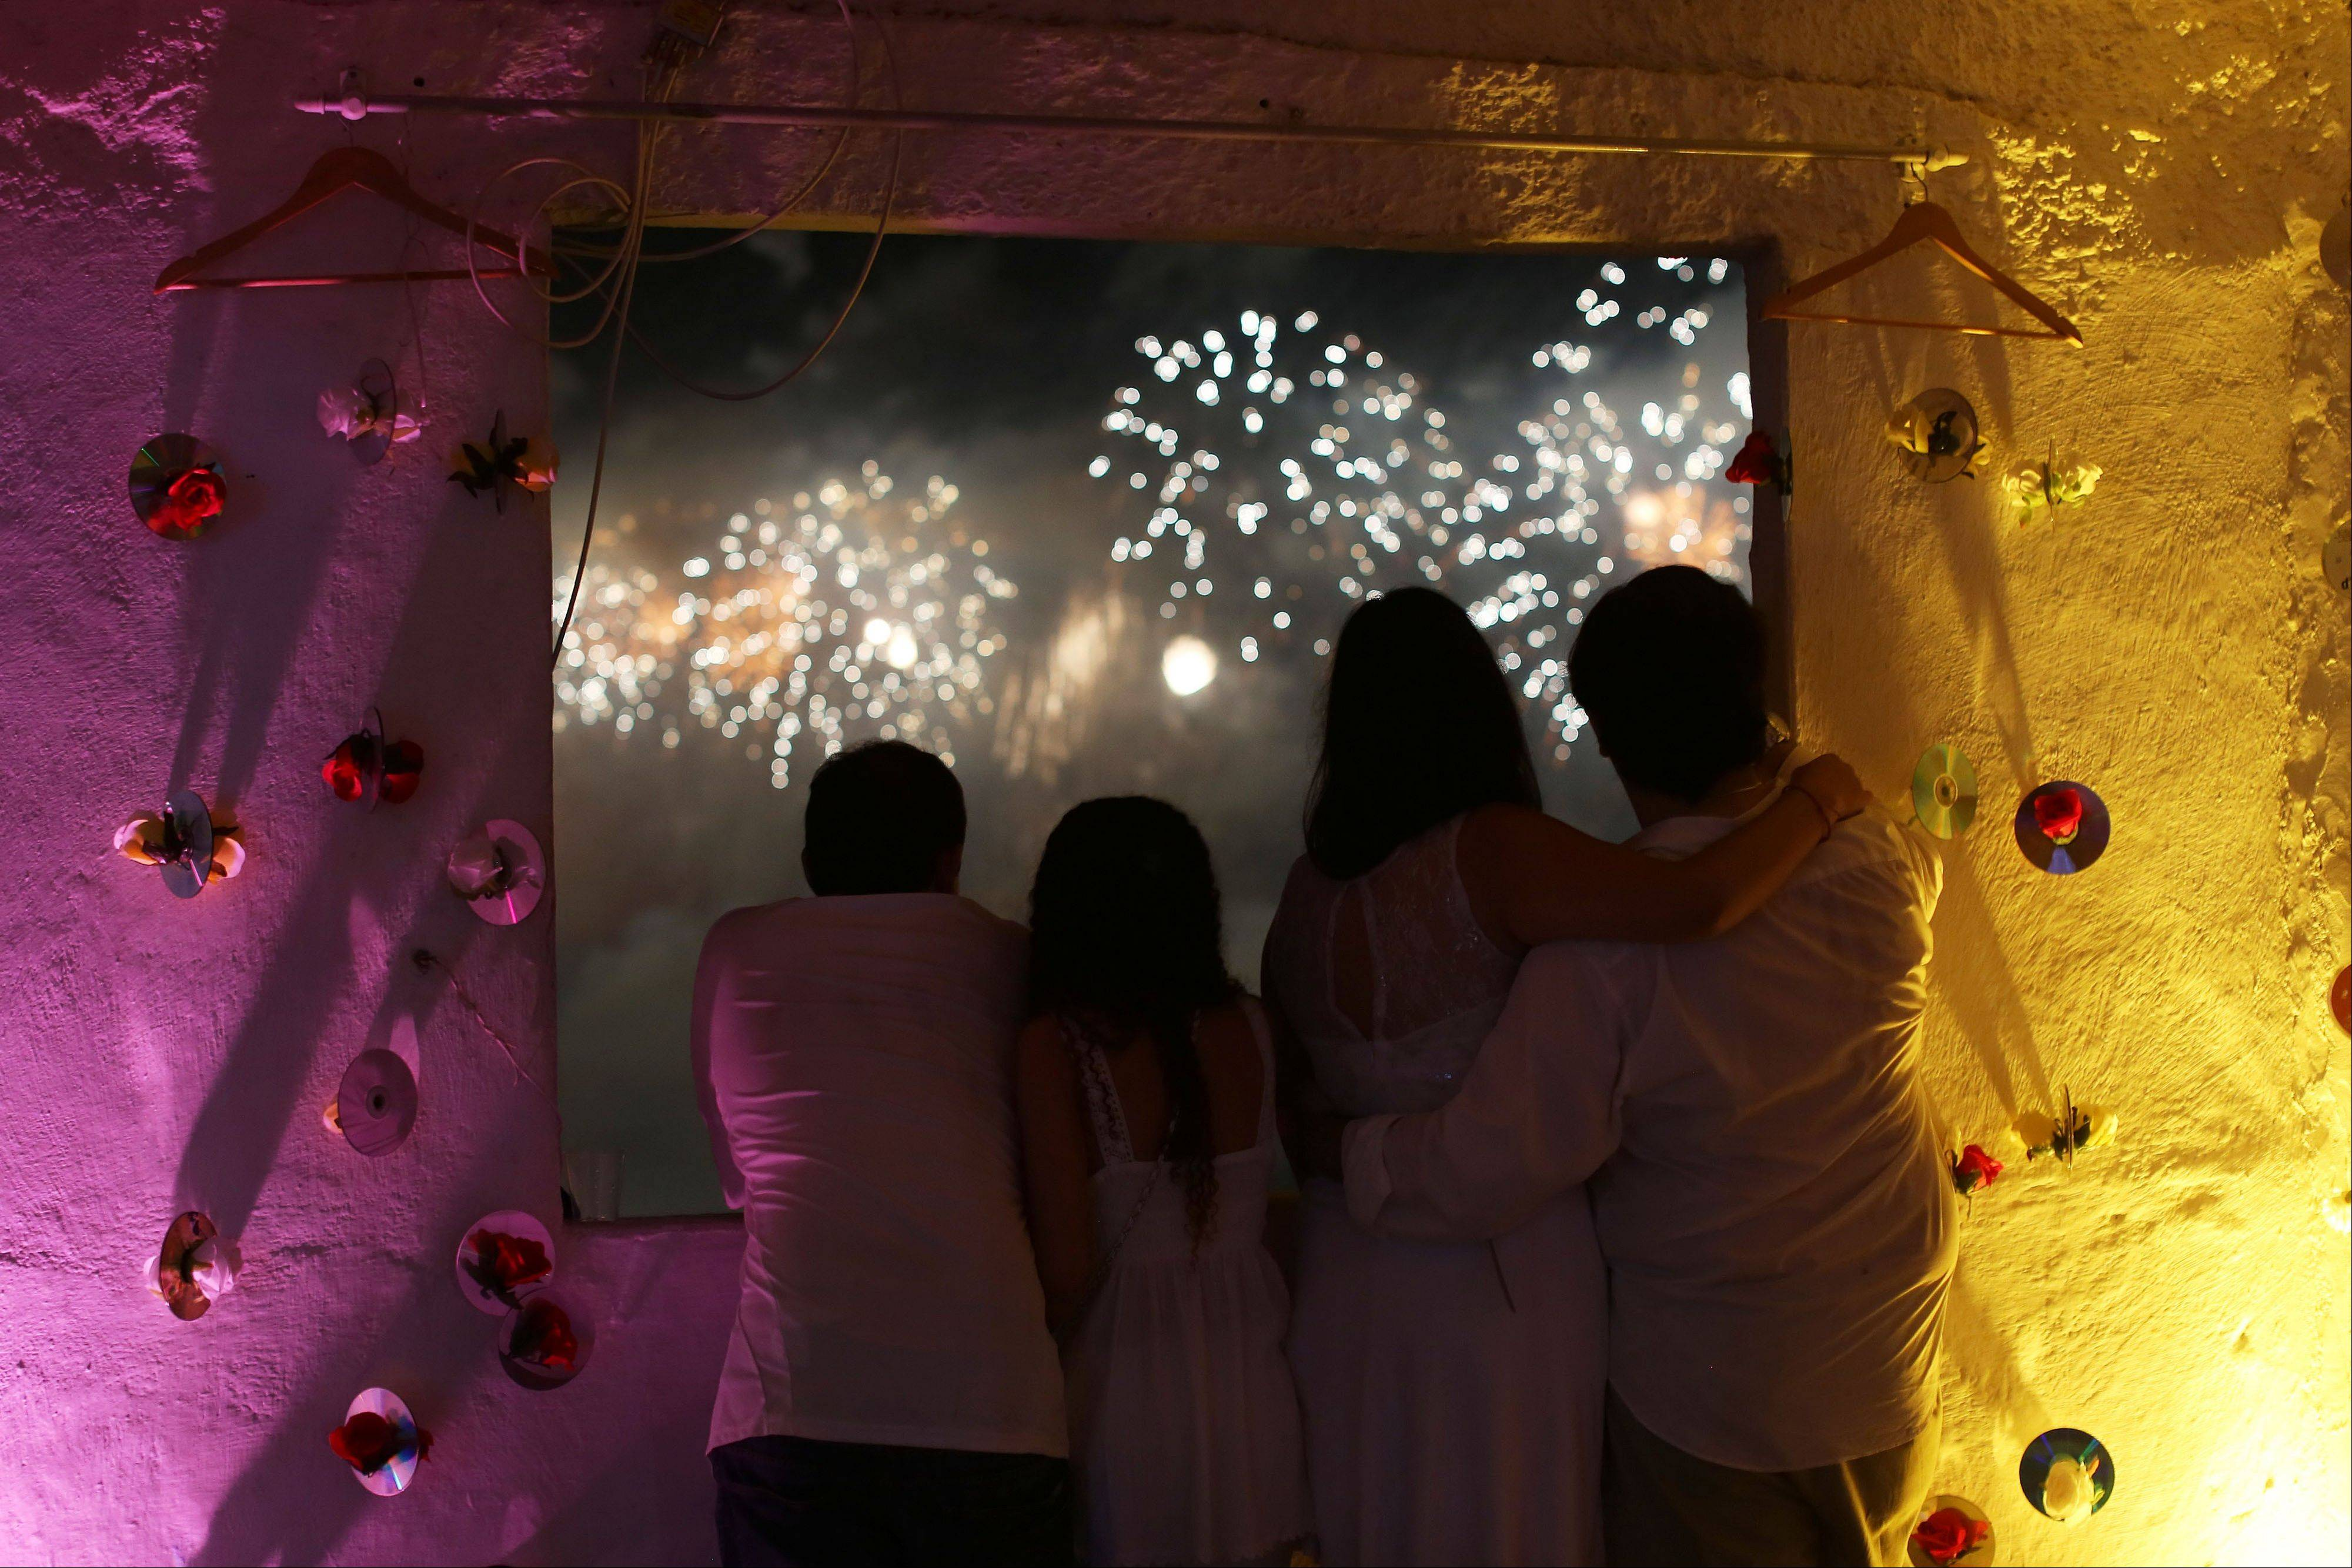 People on a rooftop in the Pavao Pavaozinho slum watch fireworks exploding over Copacabana beach during New Year's Eve celebrations in Rio de Janeiro, Brazil, Wednesday, Jan. 1, 2014.